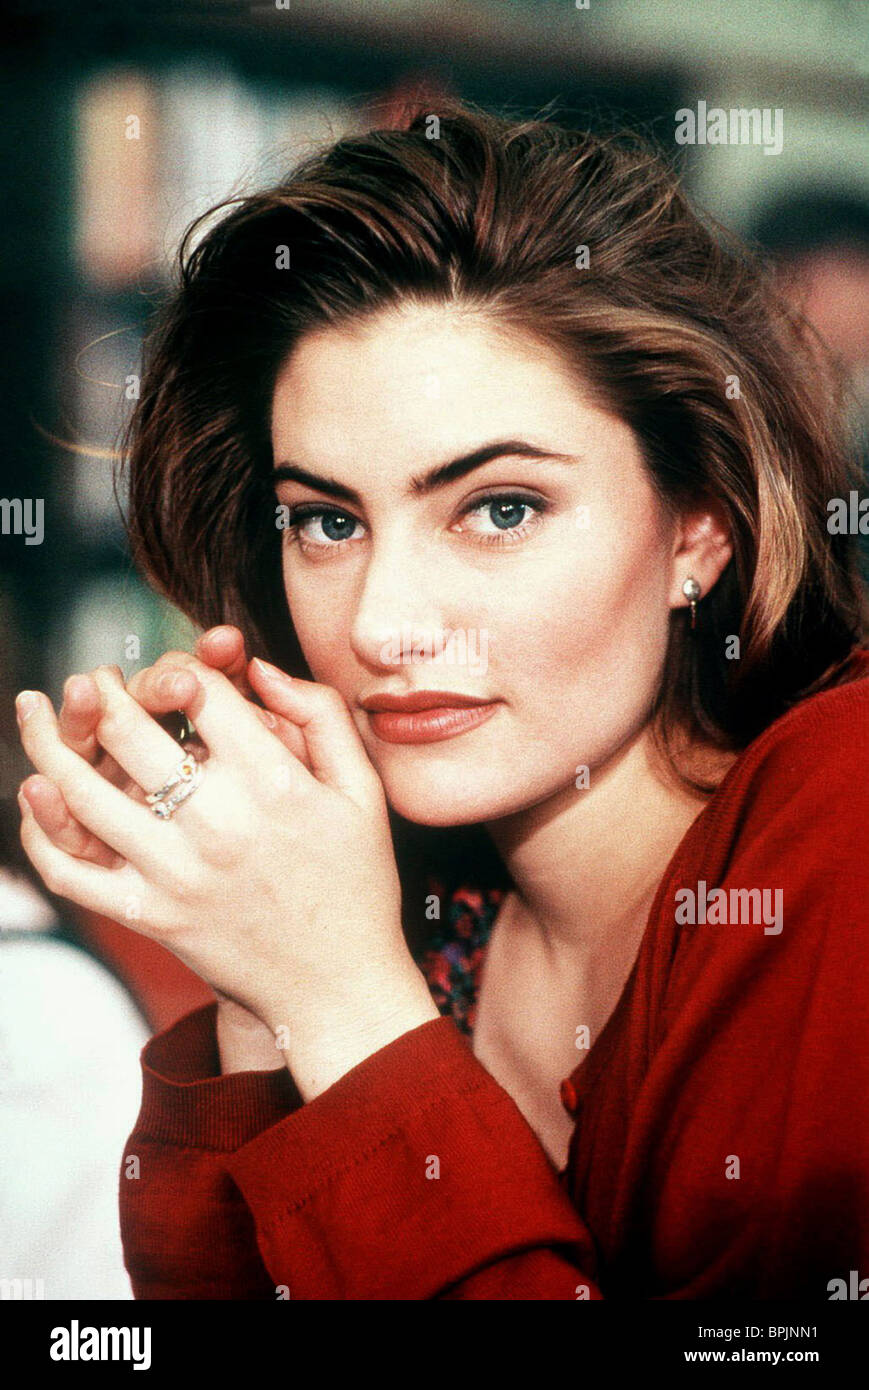 Madchen amick stock photos madchen amick stock images for Kinderzimmerlampe madchen